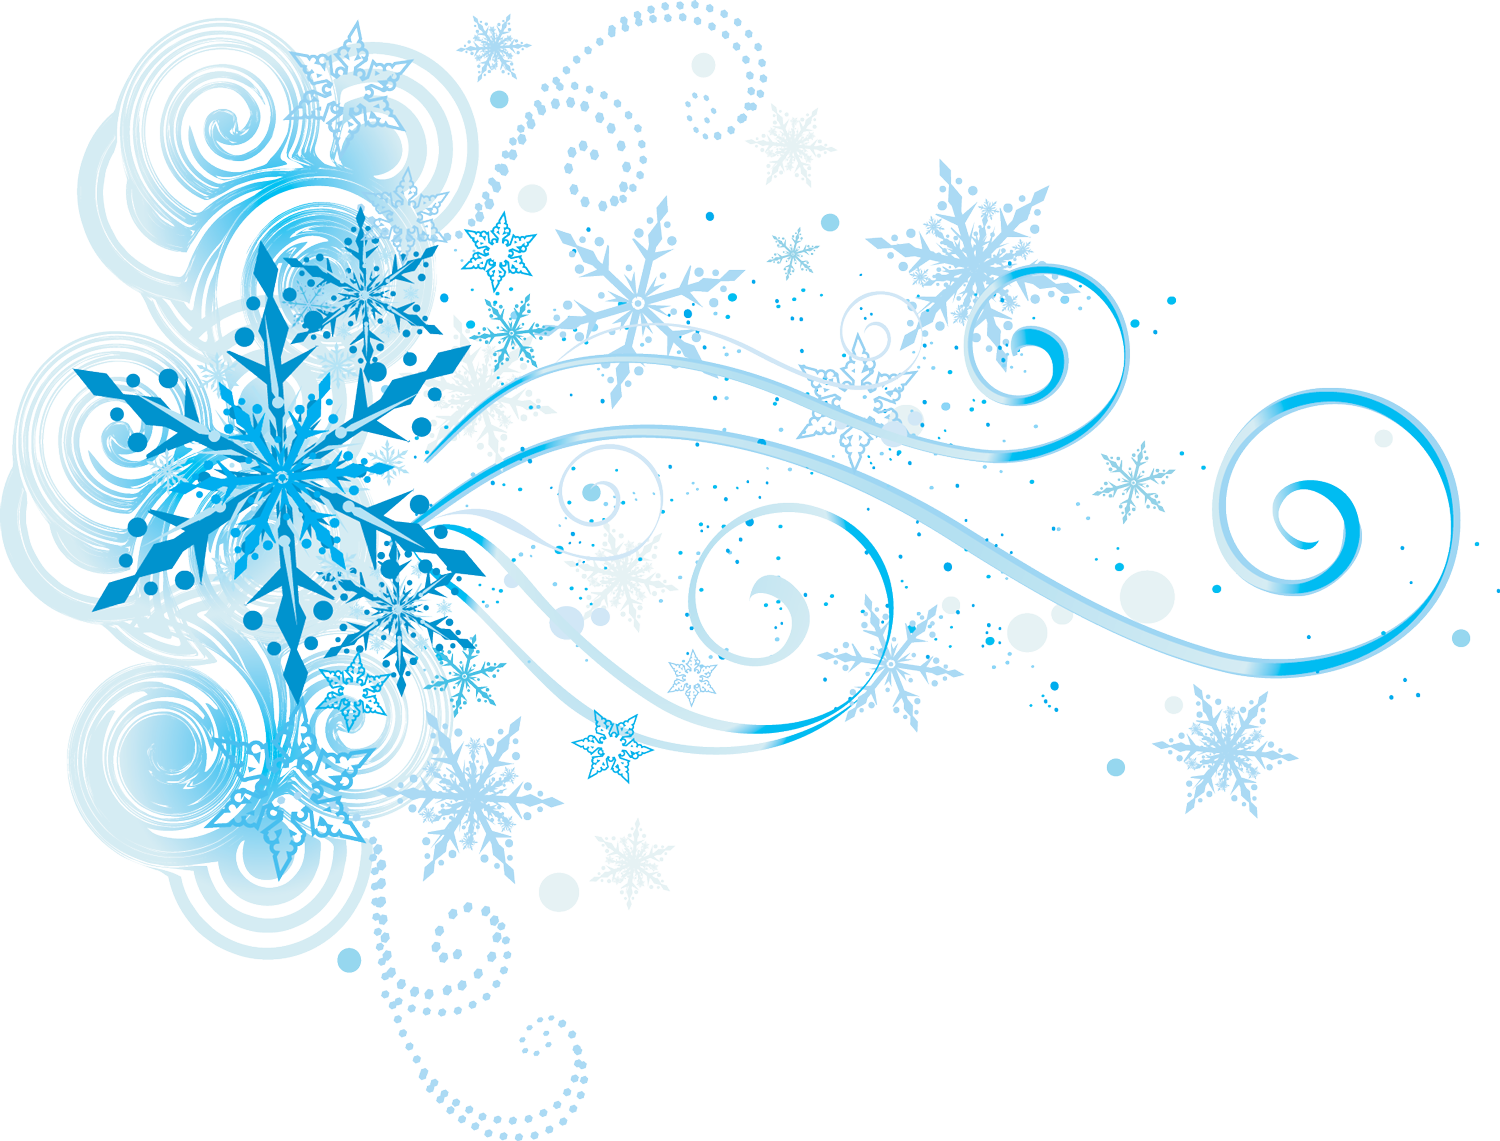 Solid snowflake clipart svg 28+ Collection of Beautiful Snowflake Clipart | High quality, free ... svg